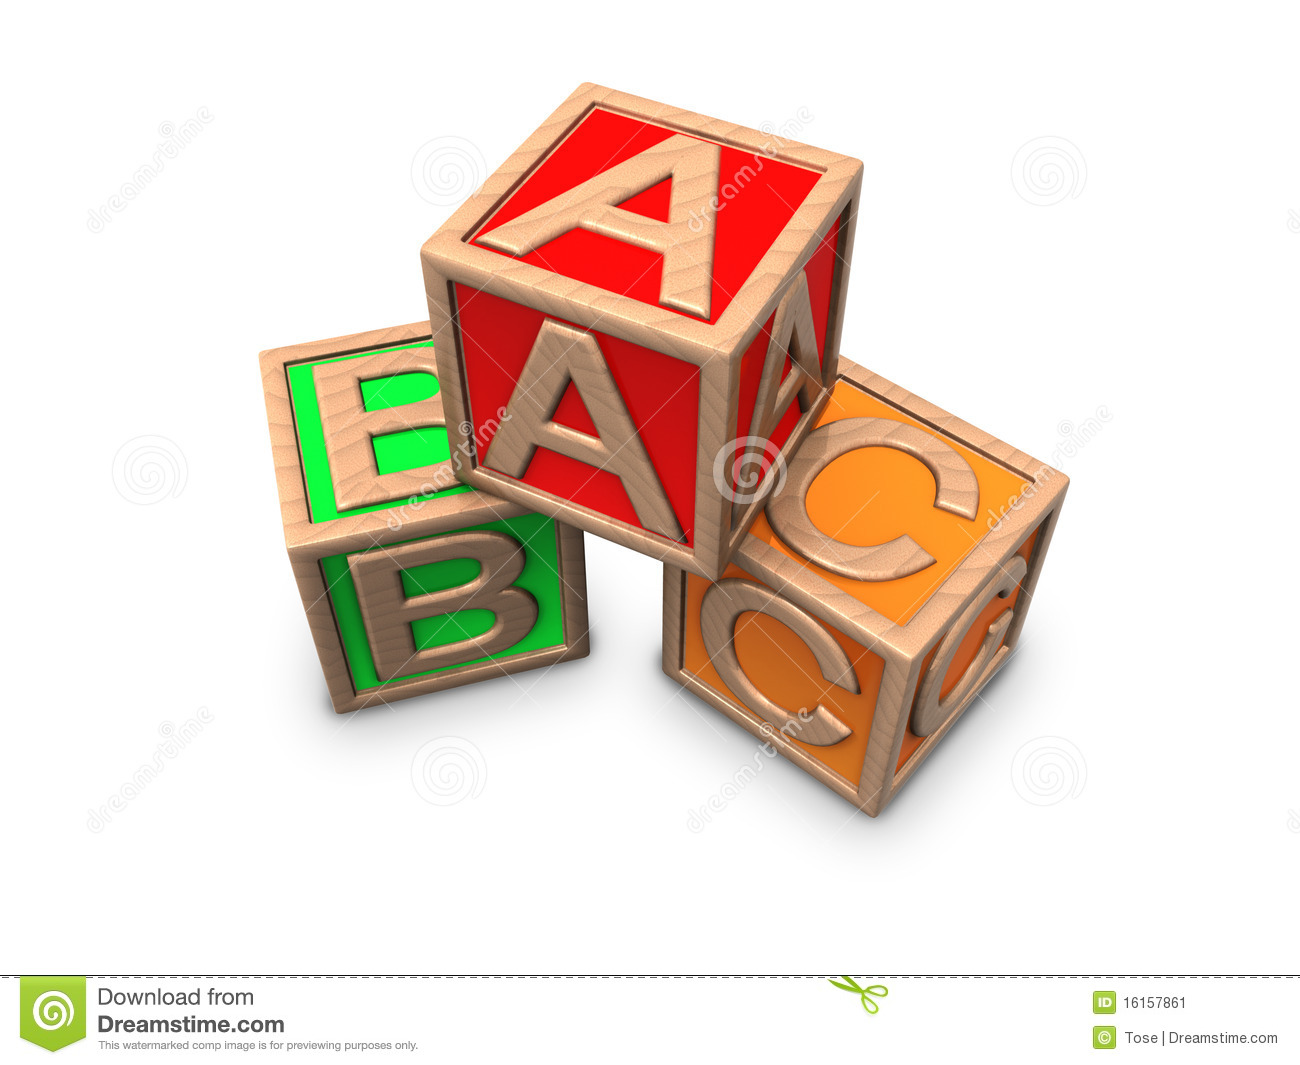 Clipart of wooden blocks with alphabet letter transparent Wooden Blocks With Letters A B C Stock Image - Image: 16157861 transparent